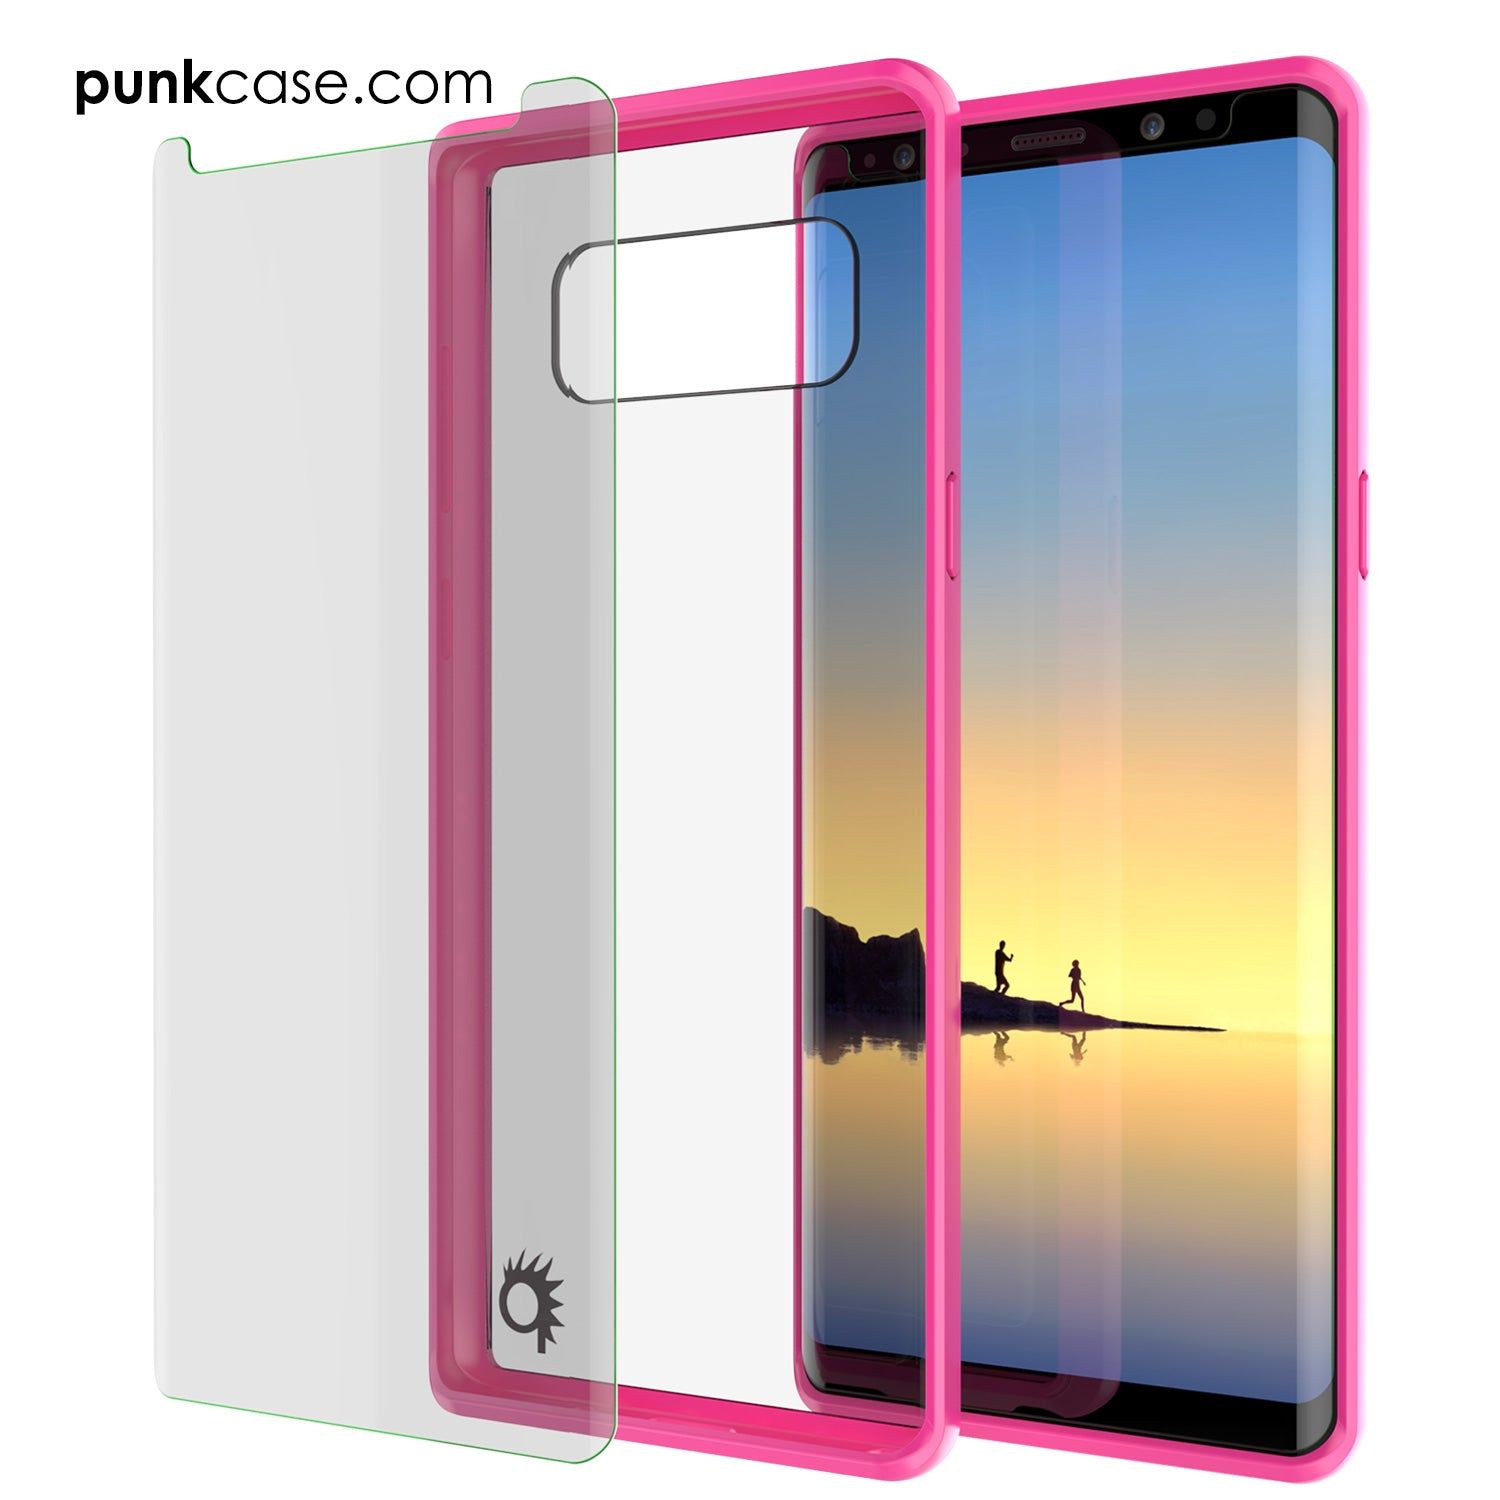 Galaxy Note 8 Screen Protector W/ Anti-Shock Proof Slim Case [Pink]